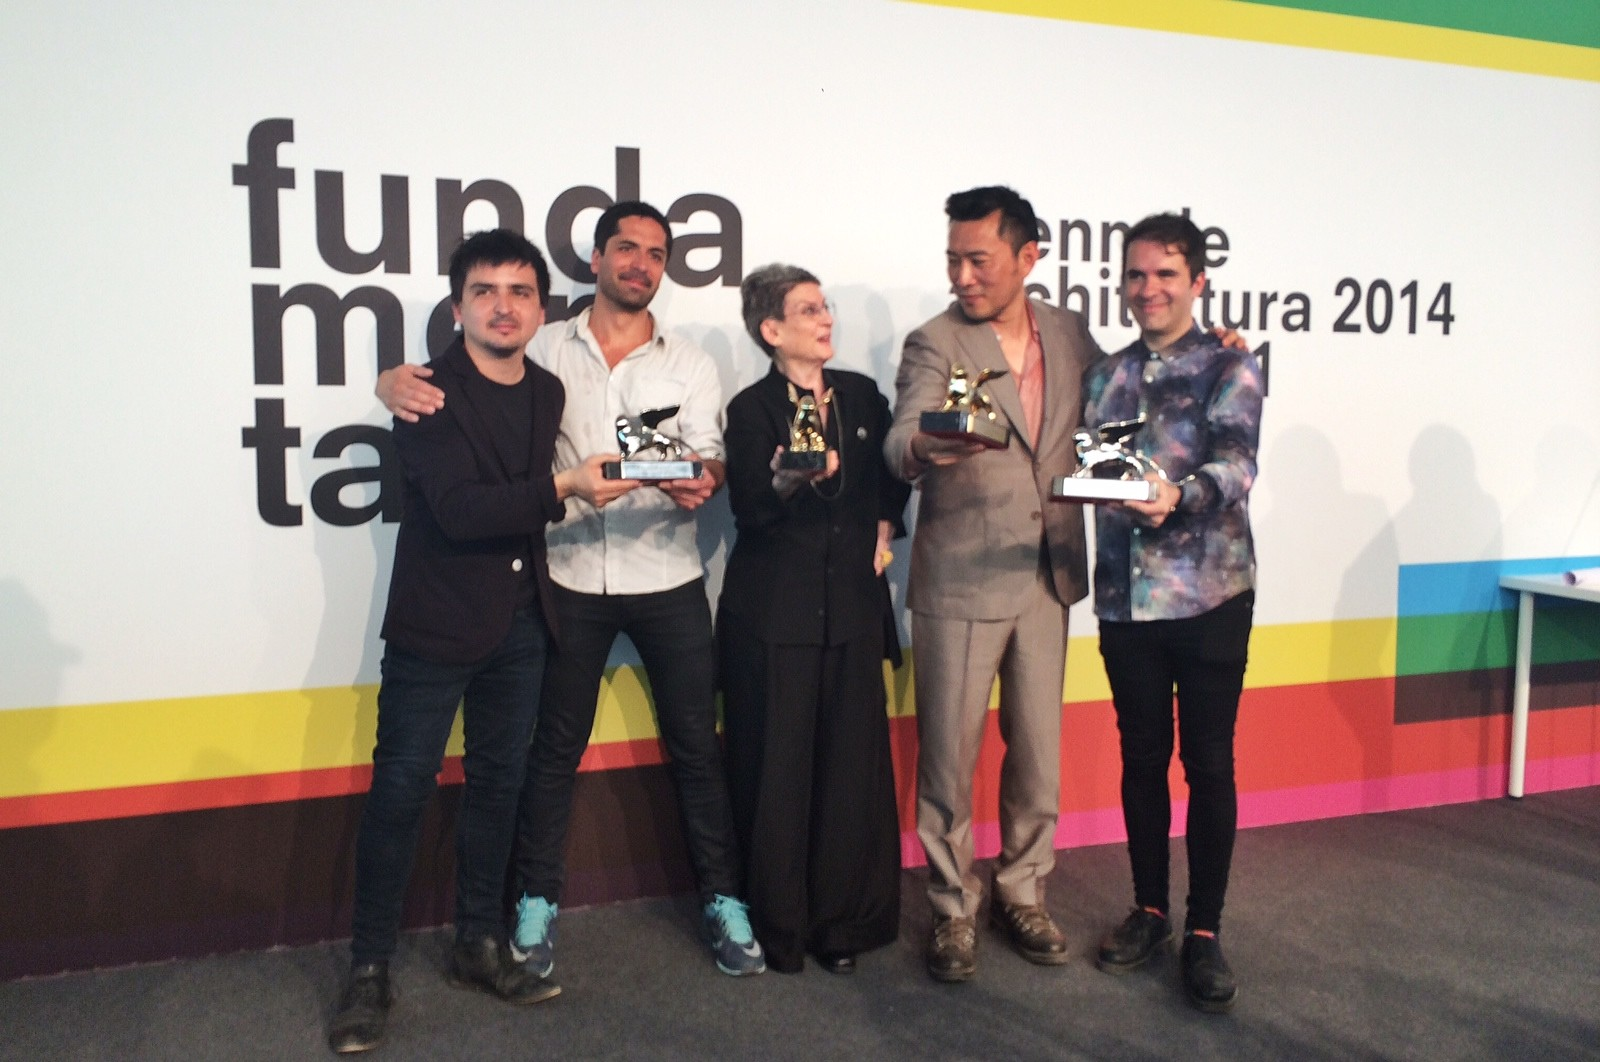 Venice Biennale 2014 Winners: Korea, Chile, Russia, France, Canada, © ArchDaily